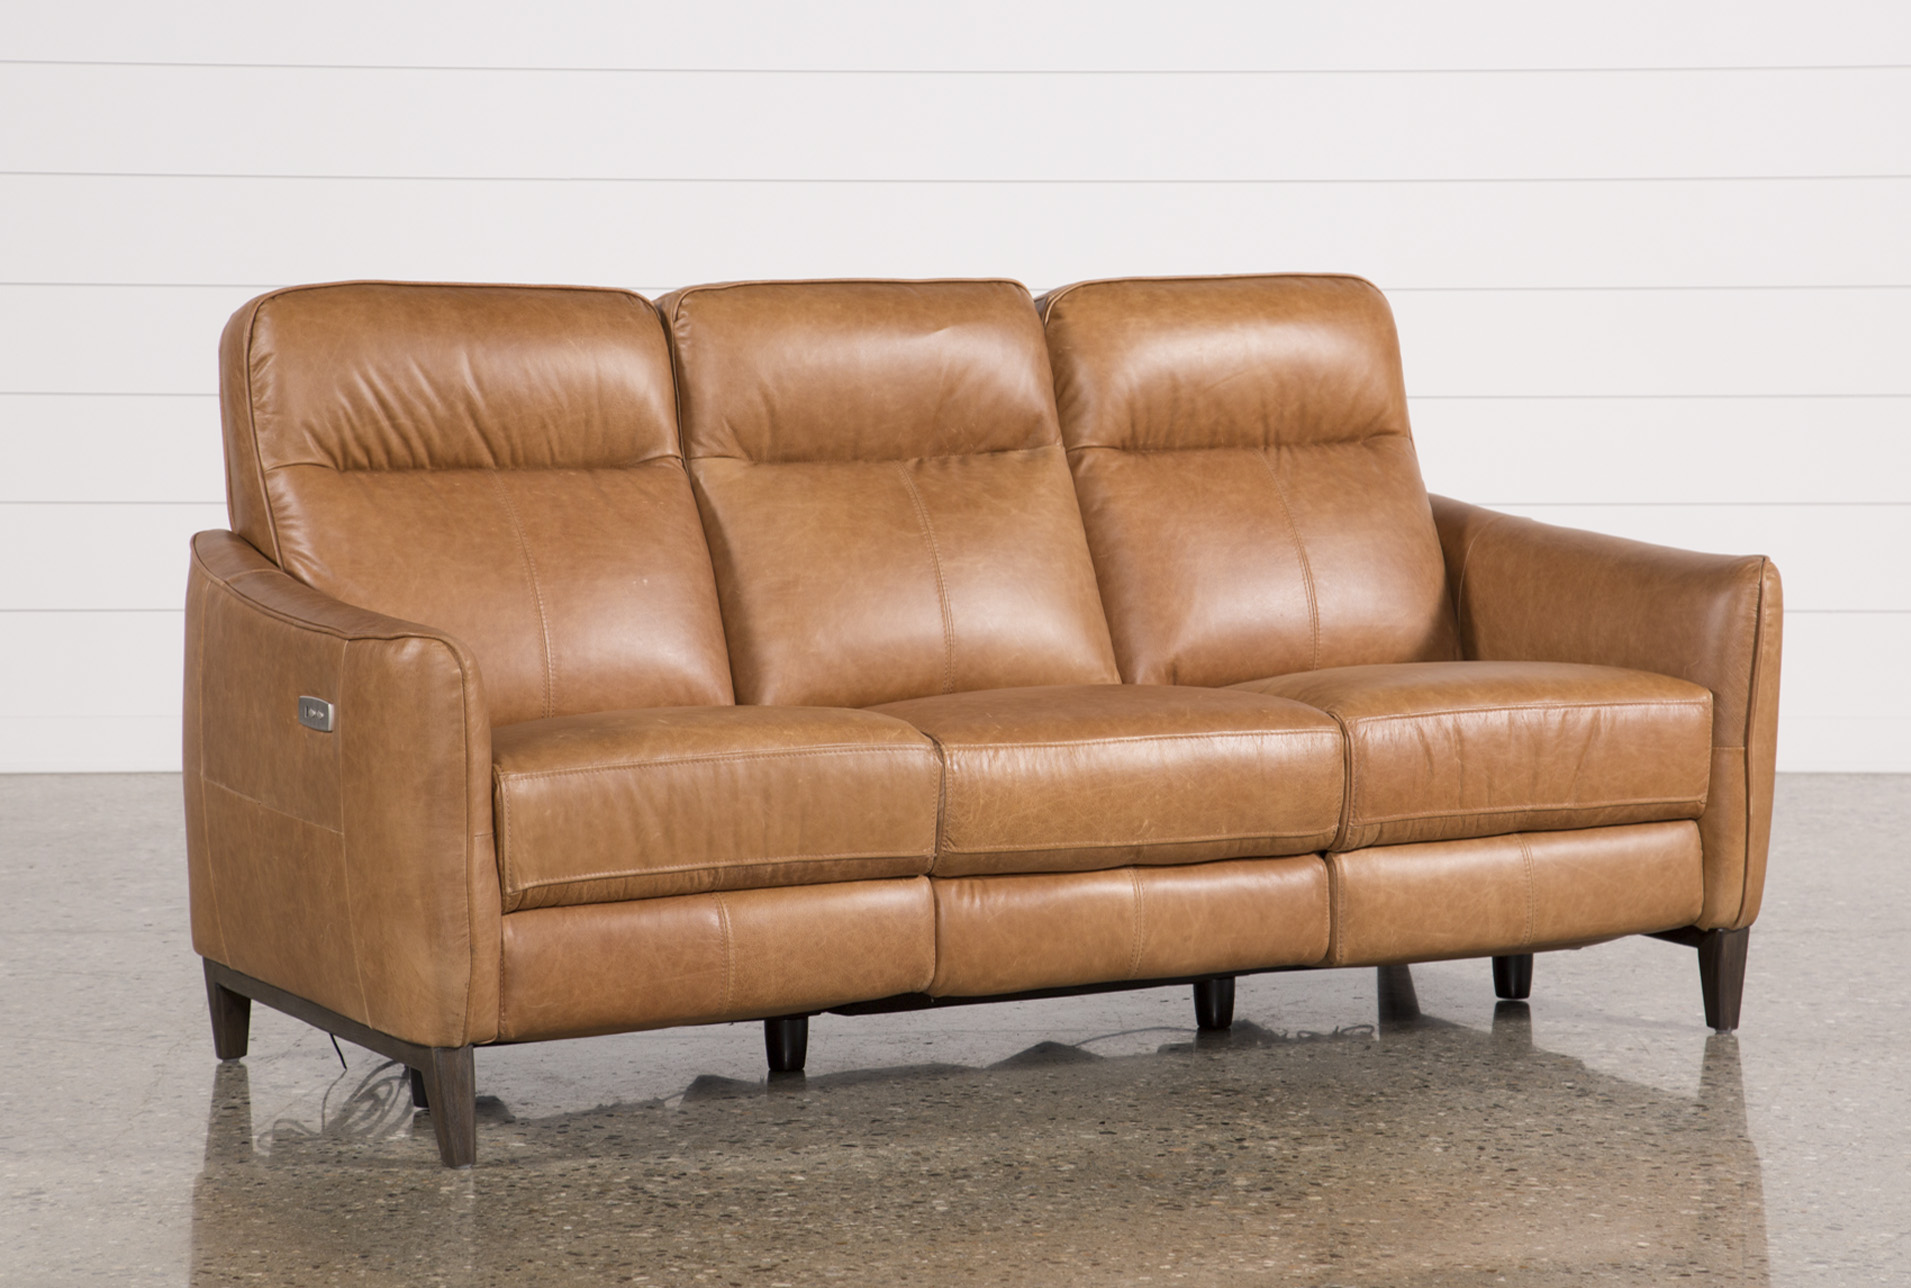 Wonderful Added To Cart. Torben Brown Leather Power Reclining Sofa ...